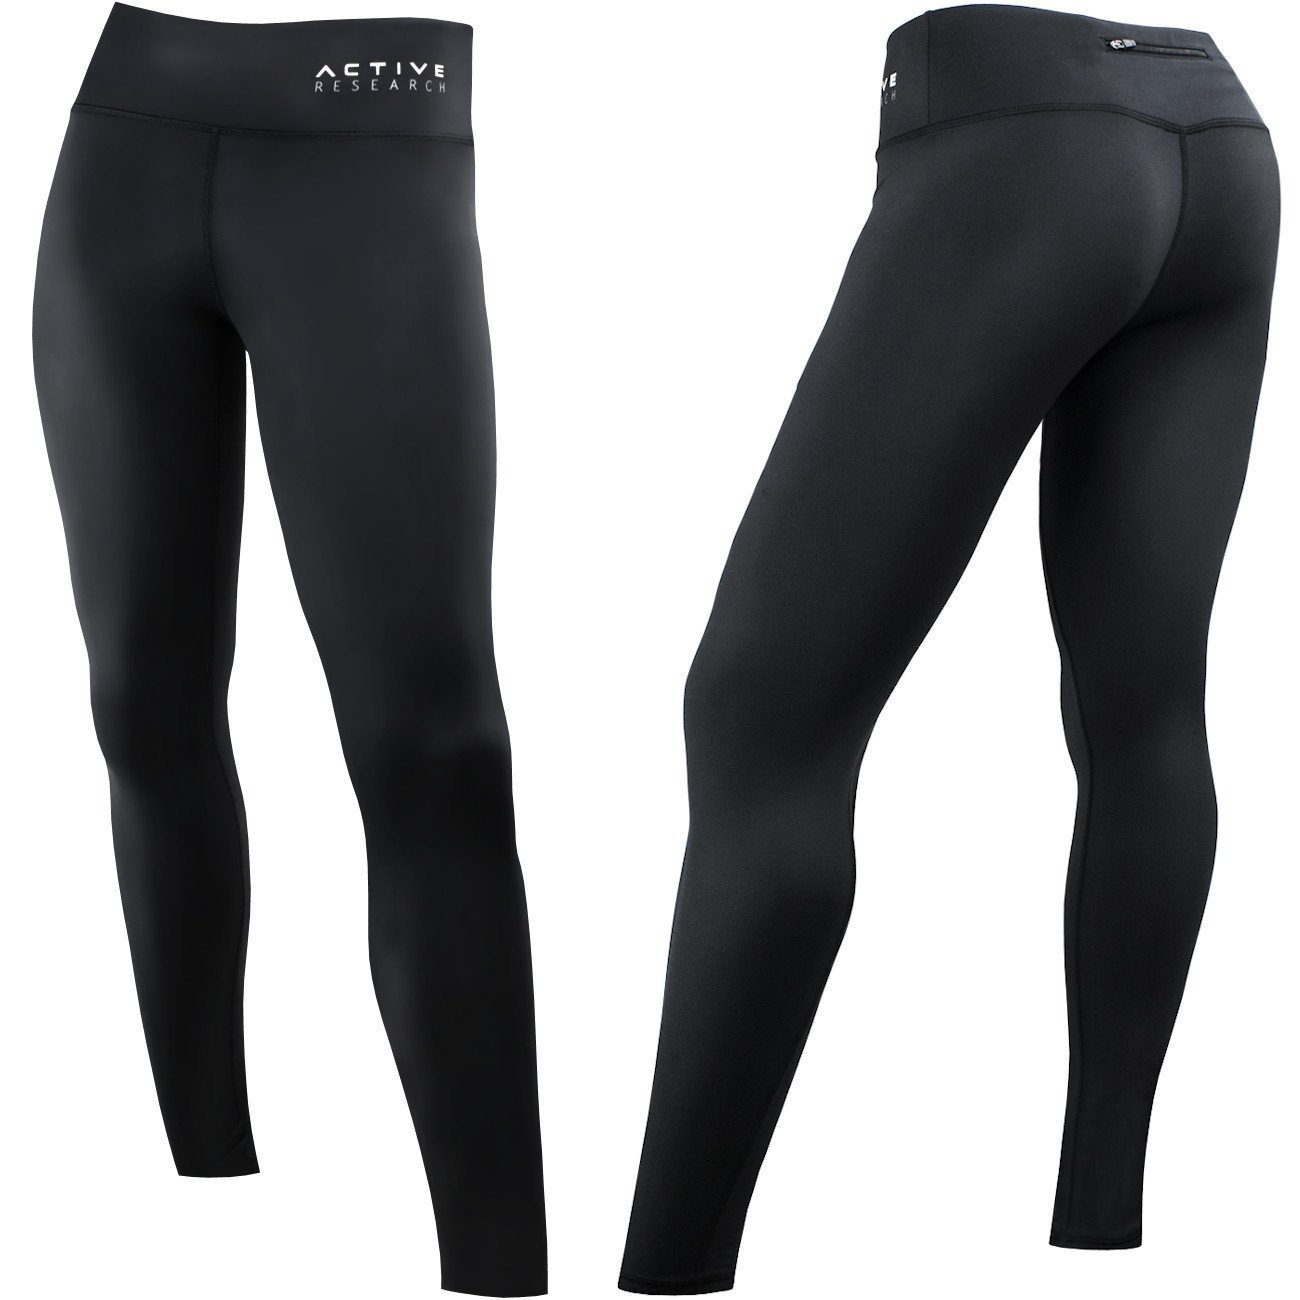 41f203a65 Active Research Women s Compression Pants - Athletic Tights – Leggings for  Yoga